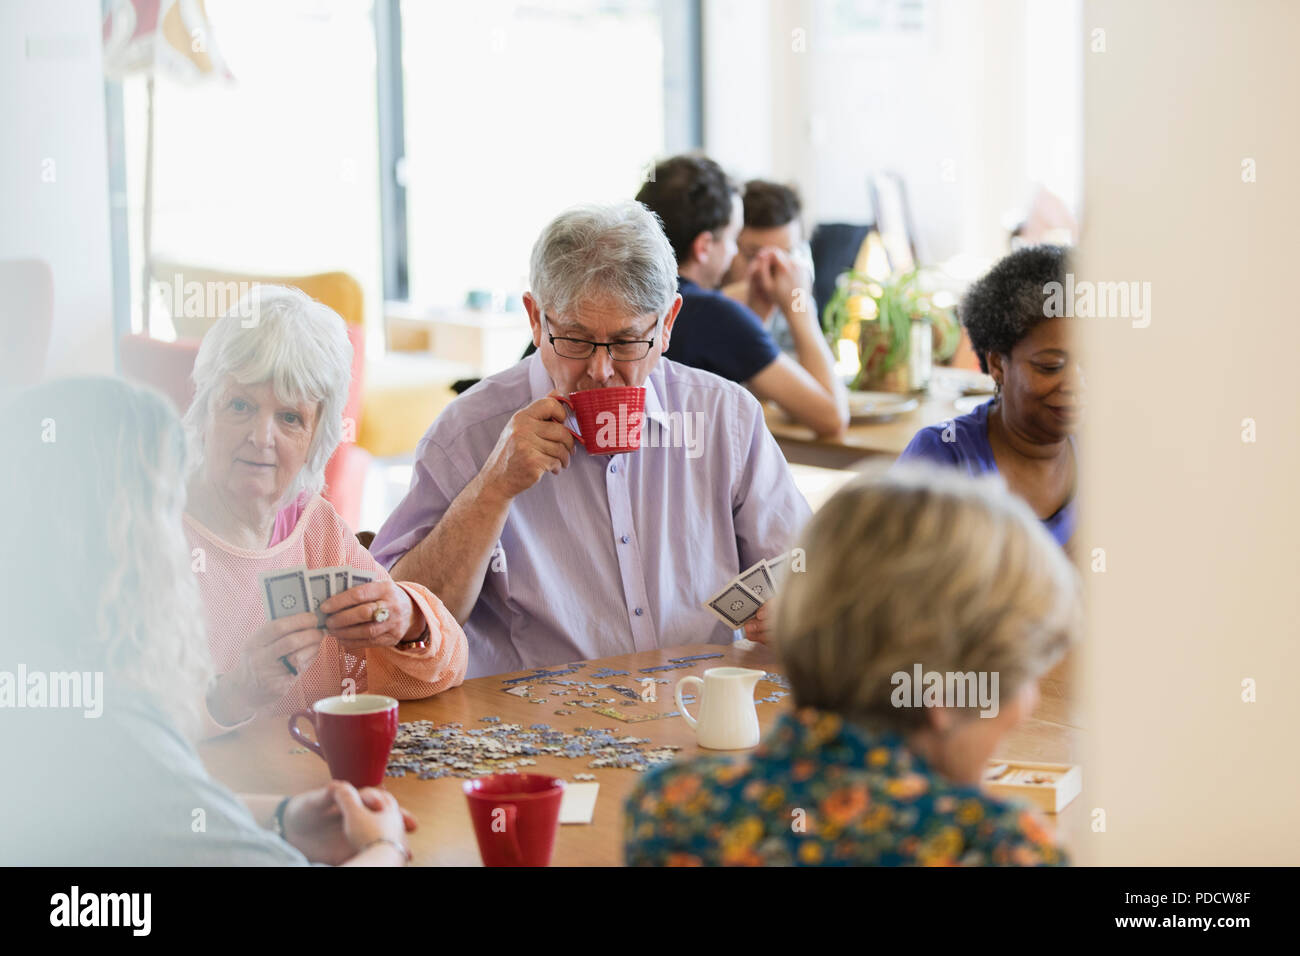 Senior friends playing games and drinking tea at table in community center - Stock Image